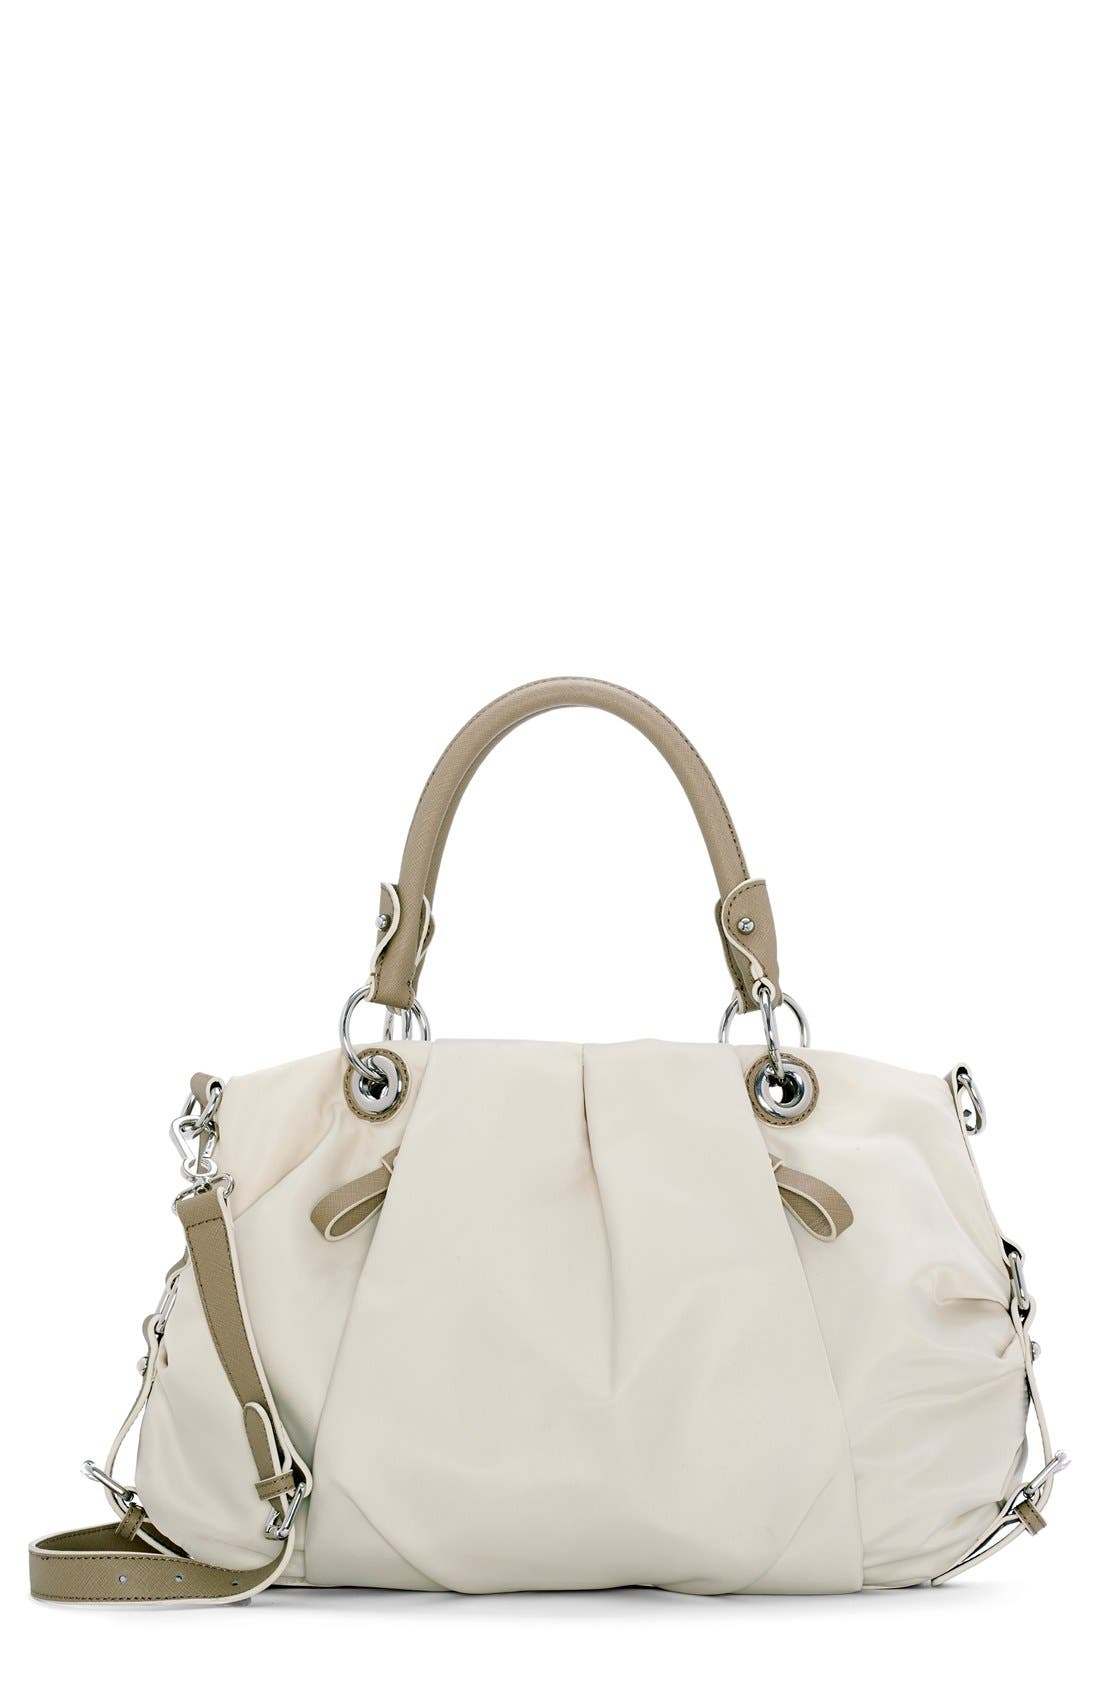 Alternate Image 1 Selected - Vince Camuto 'Cris' Nylon Crossbody Satchel